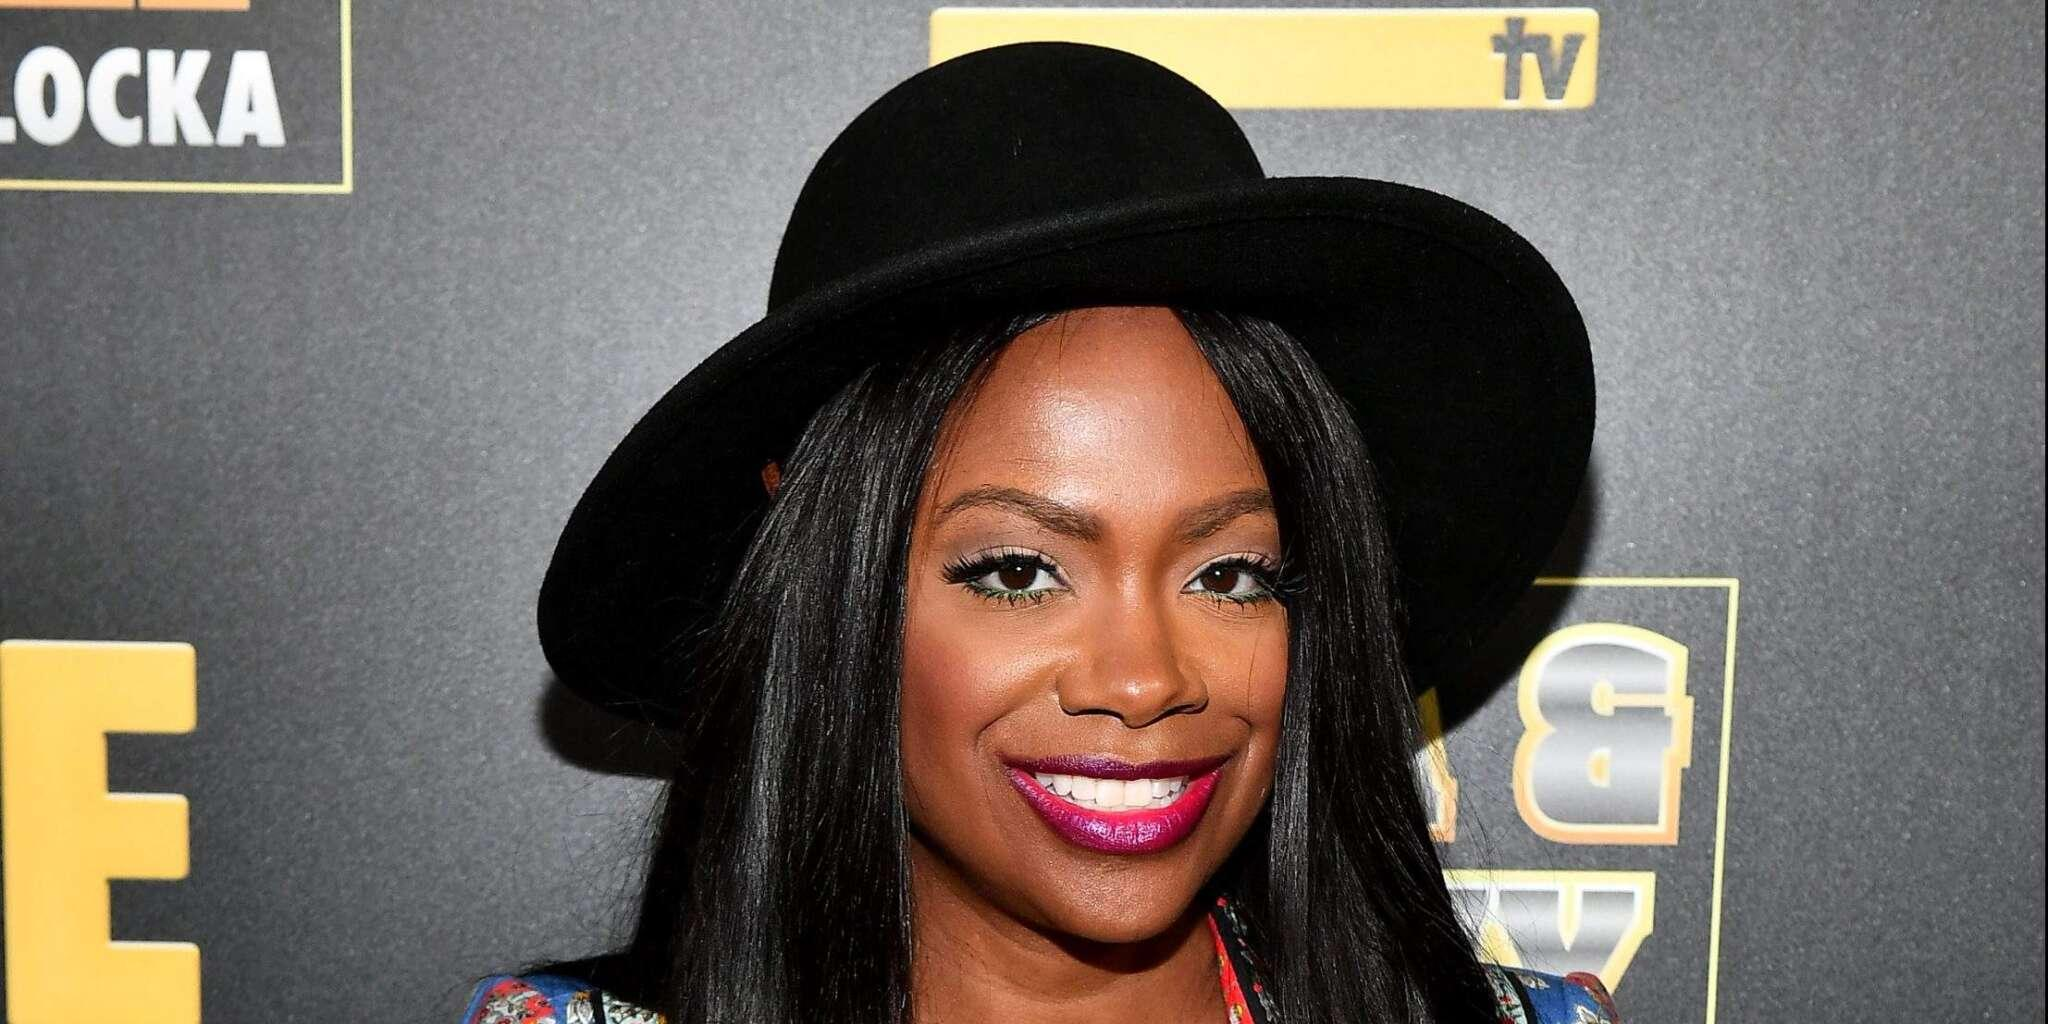 Kandi Burruss Shares Another Hilarious Clip Featuring Her And Todd Tucker's Son